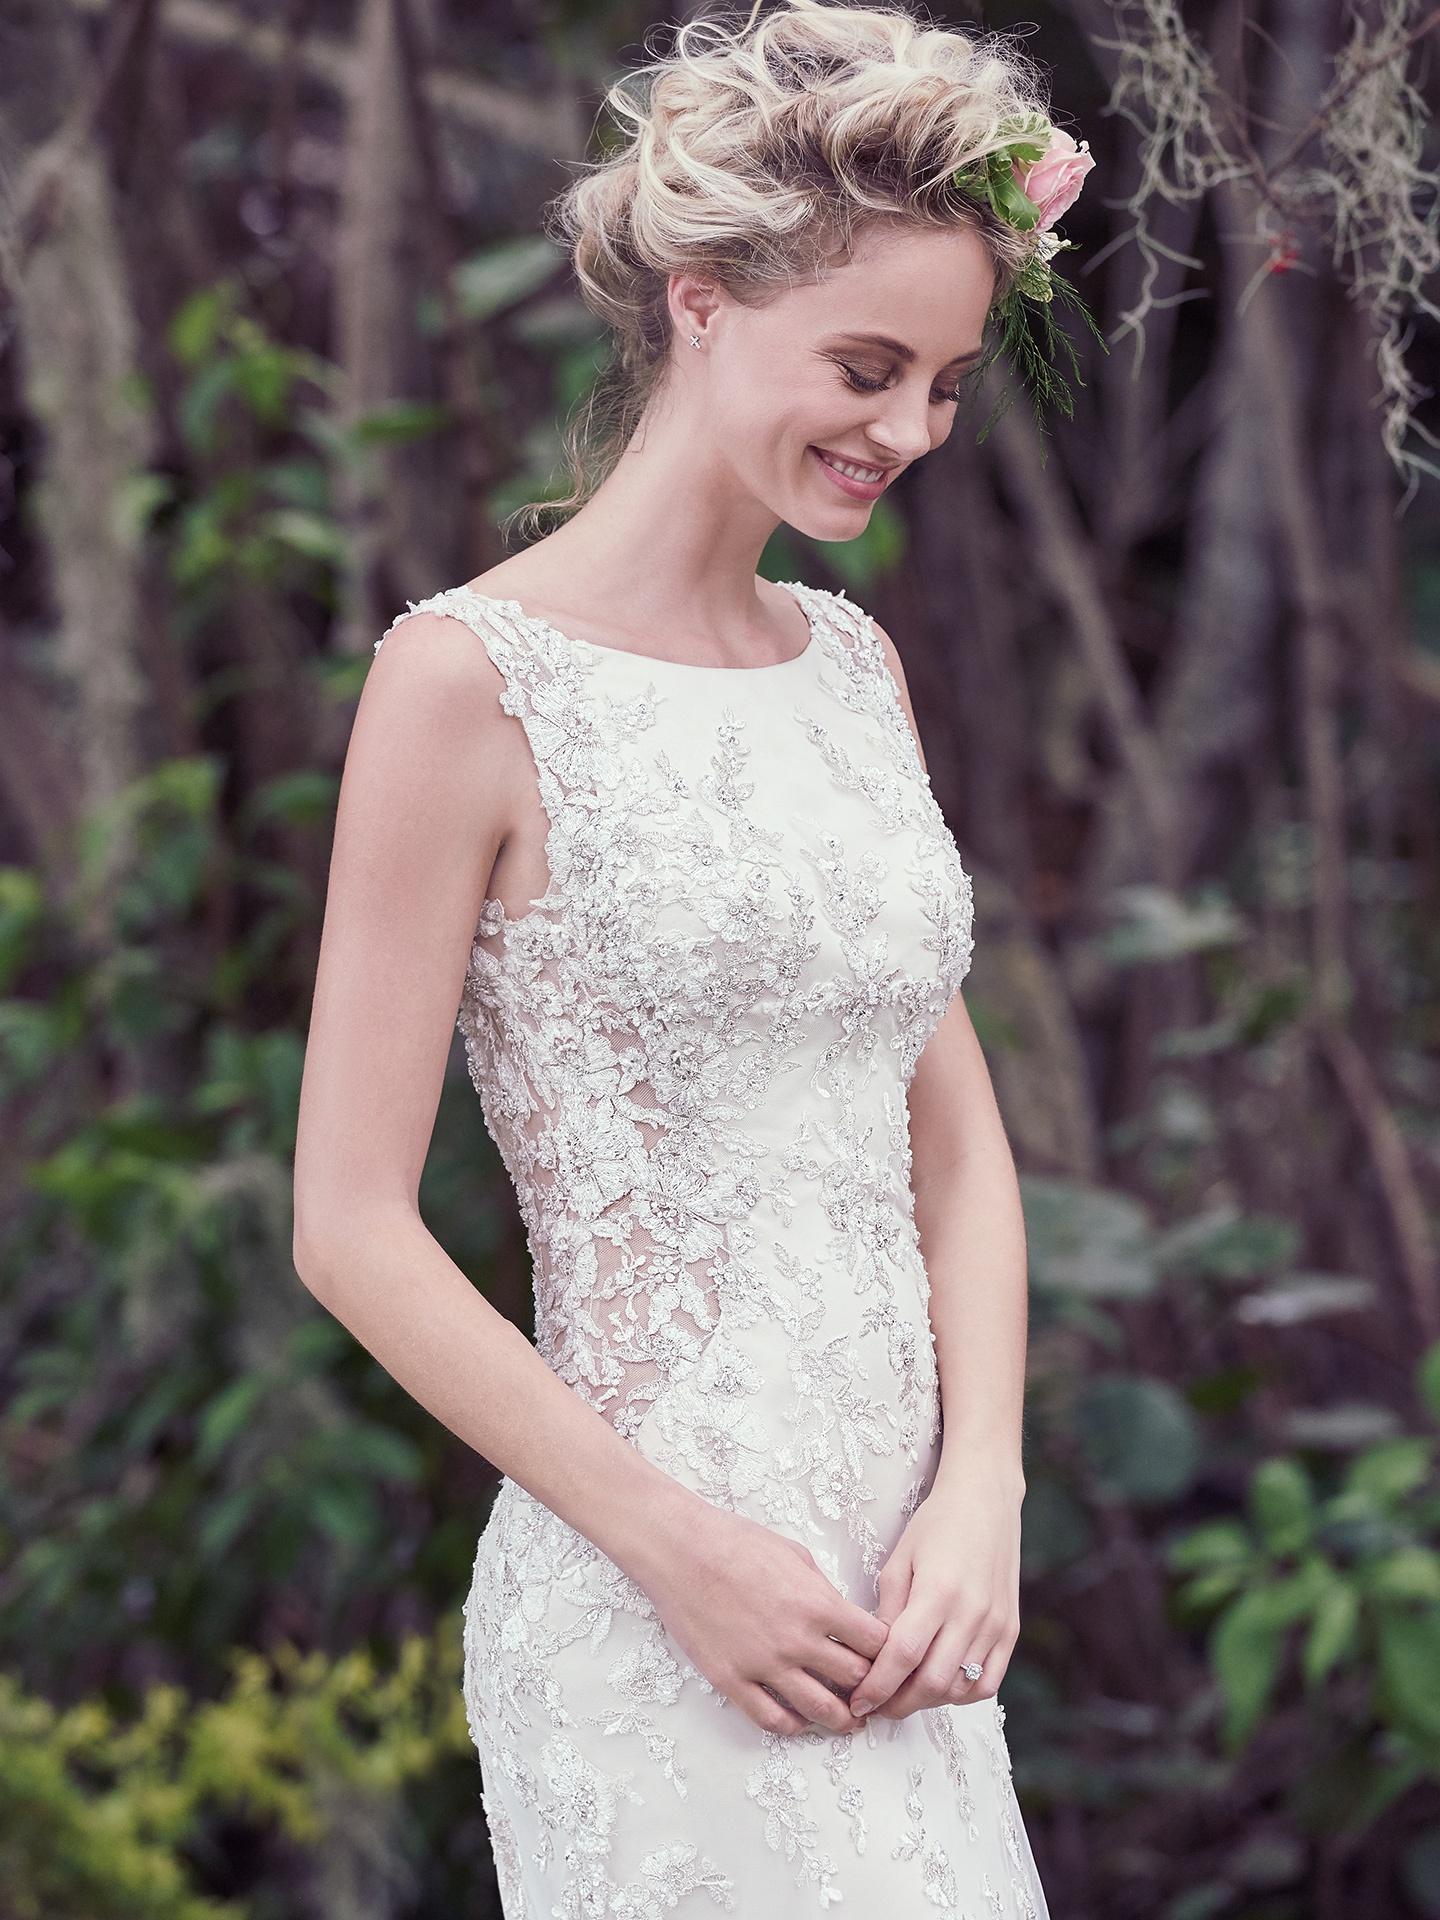 Aspen by Maggie Sottero. Illusion side panels and a keyhole back add a sexy touch to this vintage-inspired wedding dress. This A-Line gown features a bateau neckline and Swarovski crystals atop embellished lace.